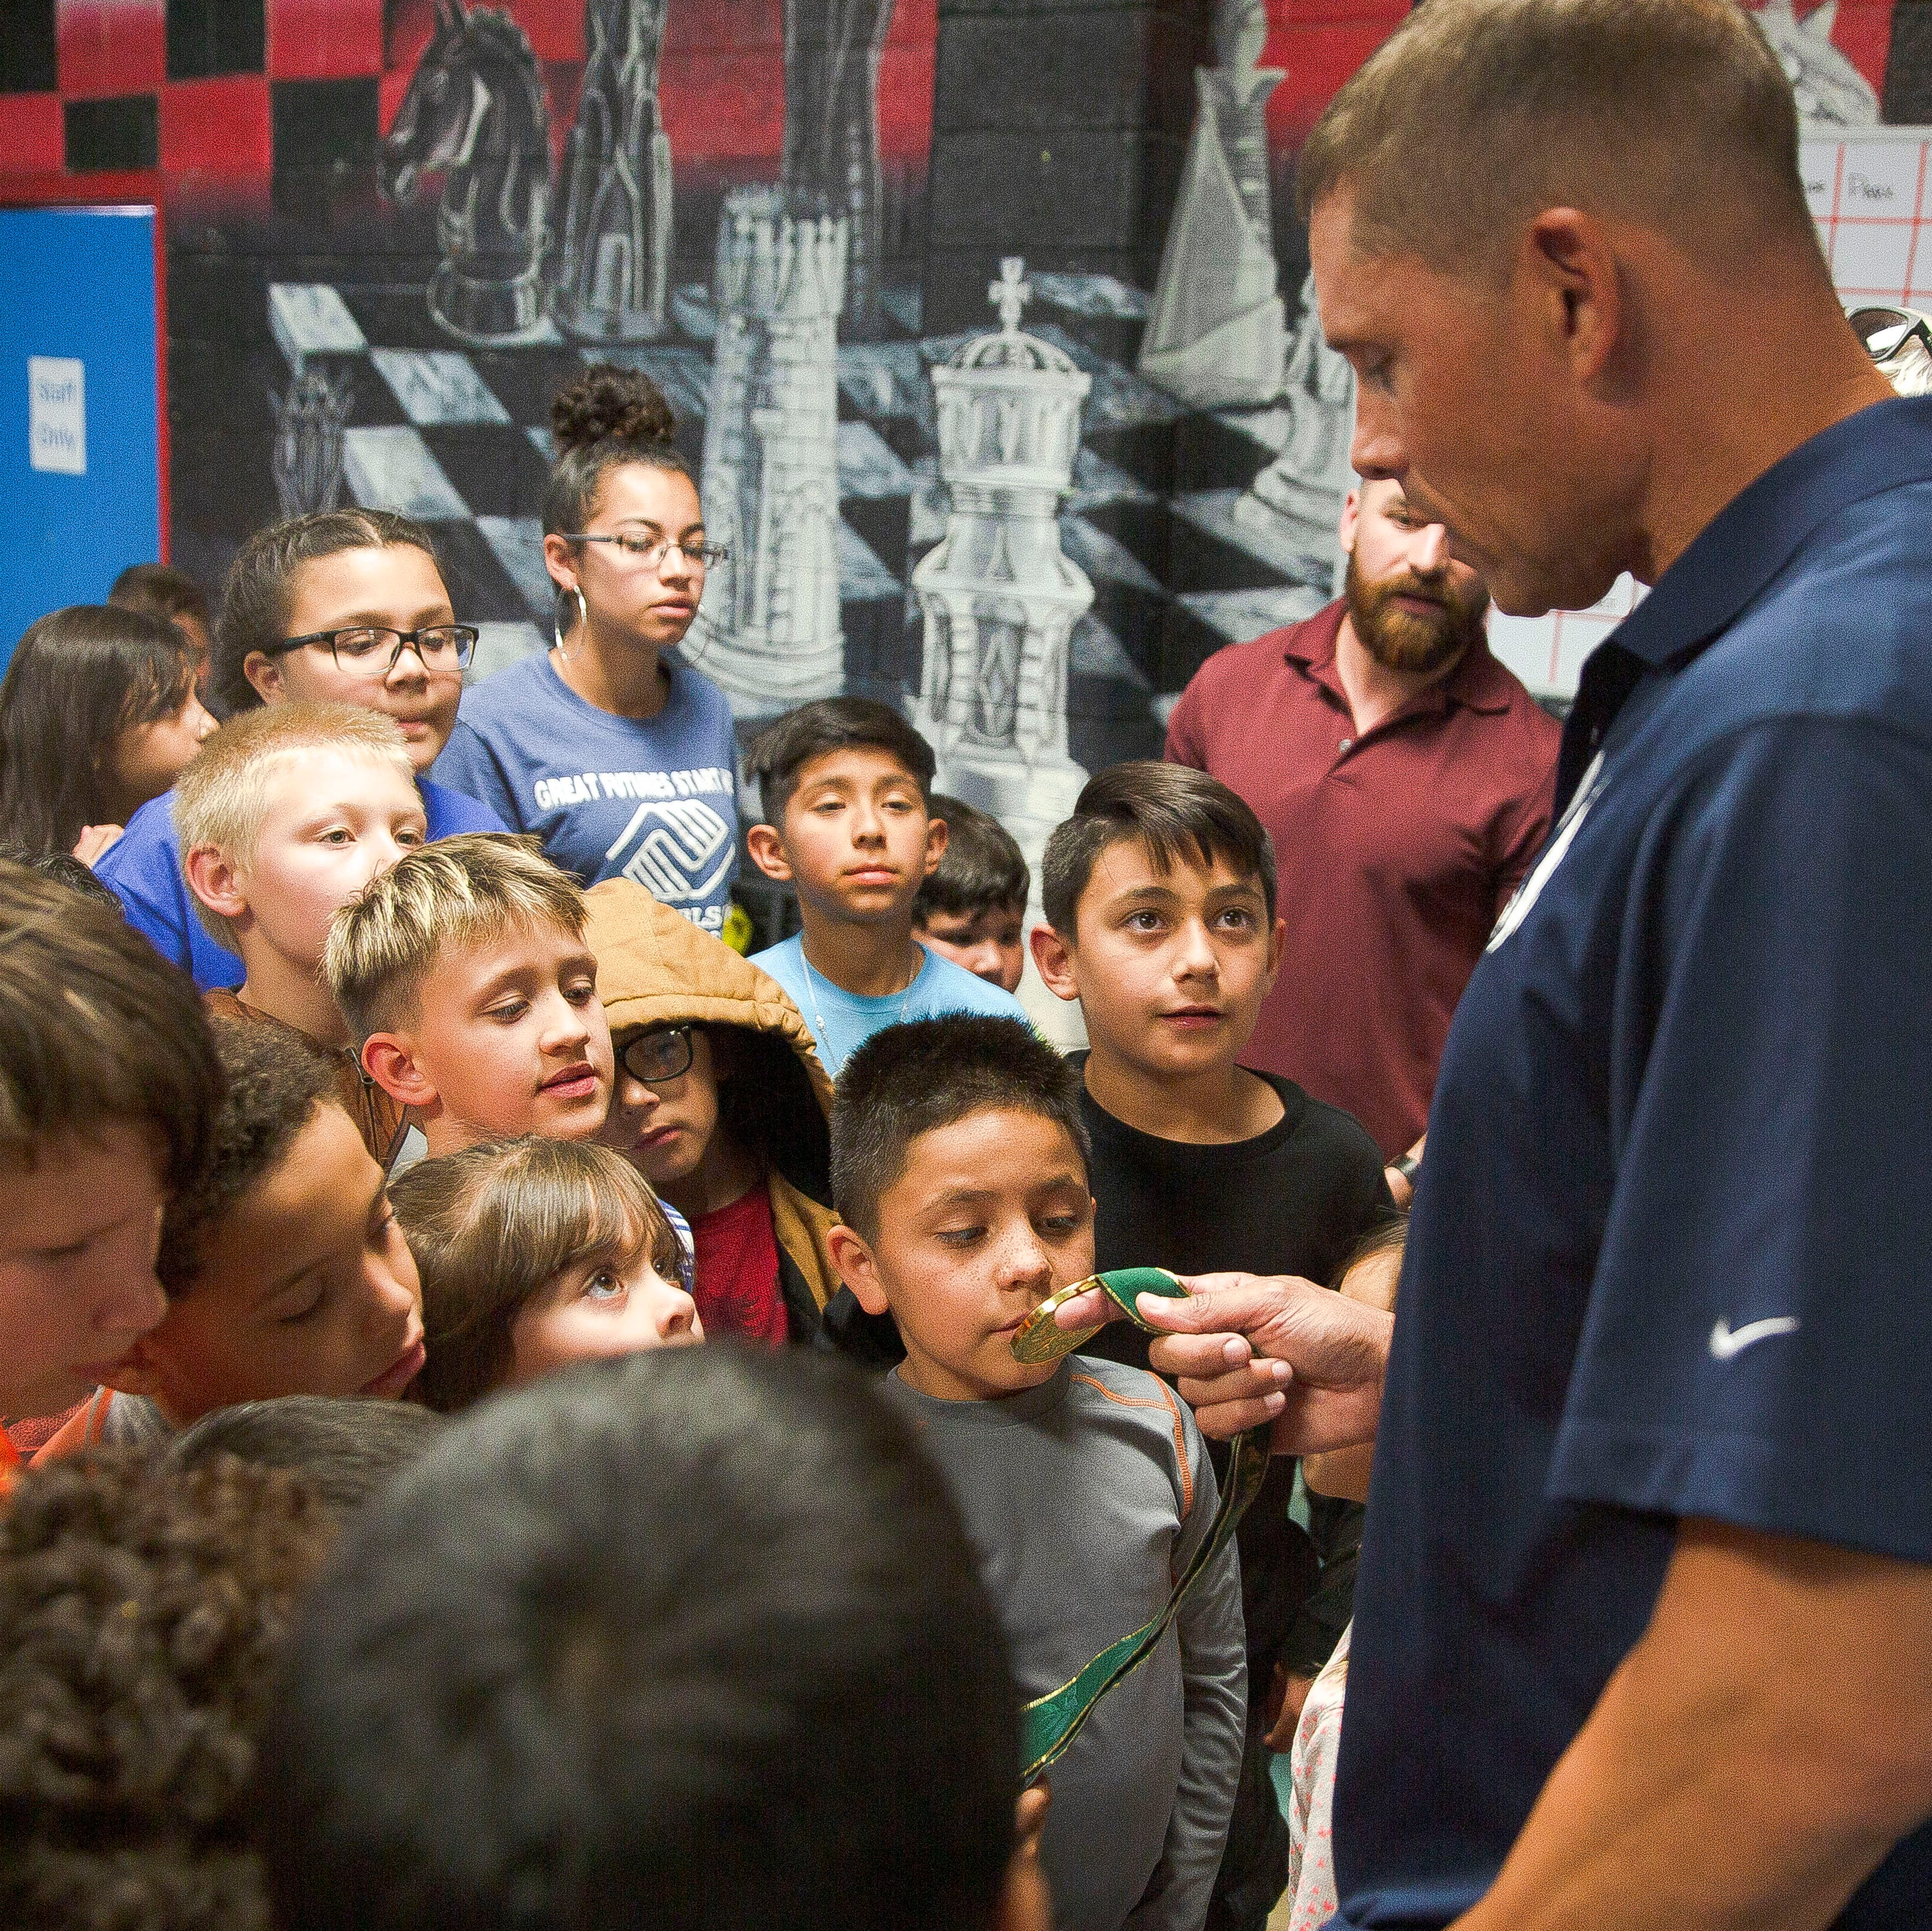 Olympic gold medalist Dan O'Brien concludes Las Cruces visit with Henson Breakfast talk